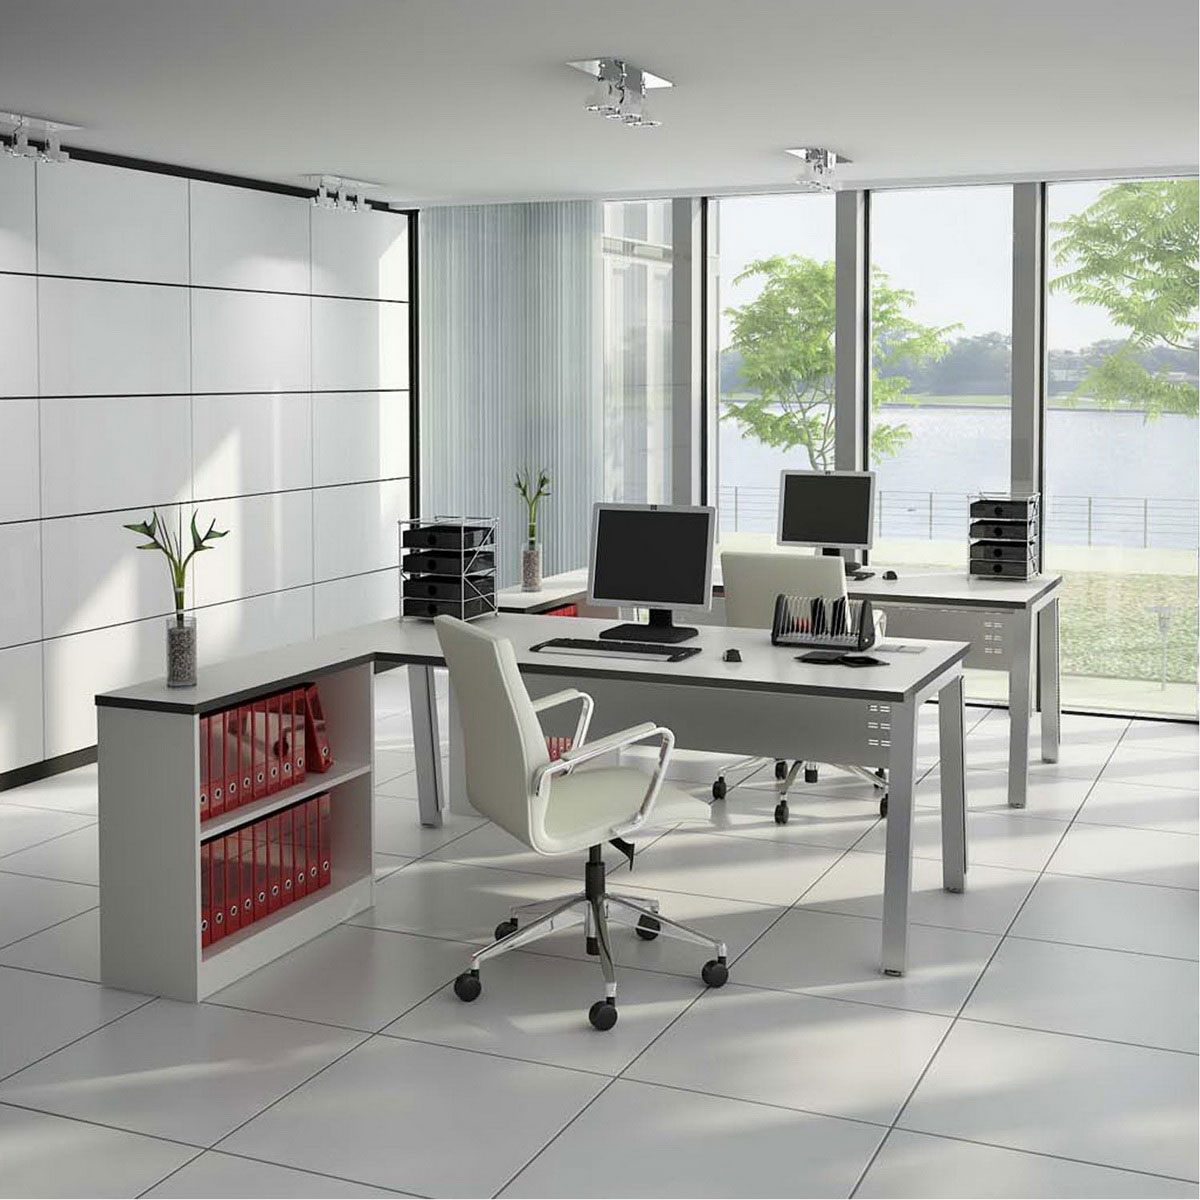 Office interior design dreams house furniture for Interior designs for office space